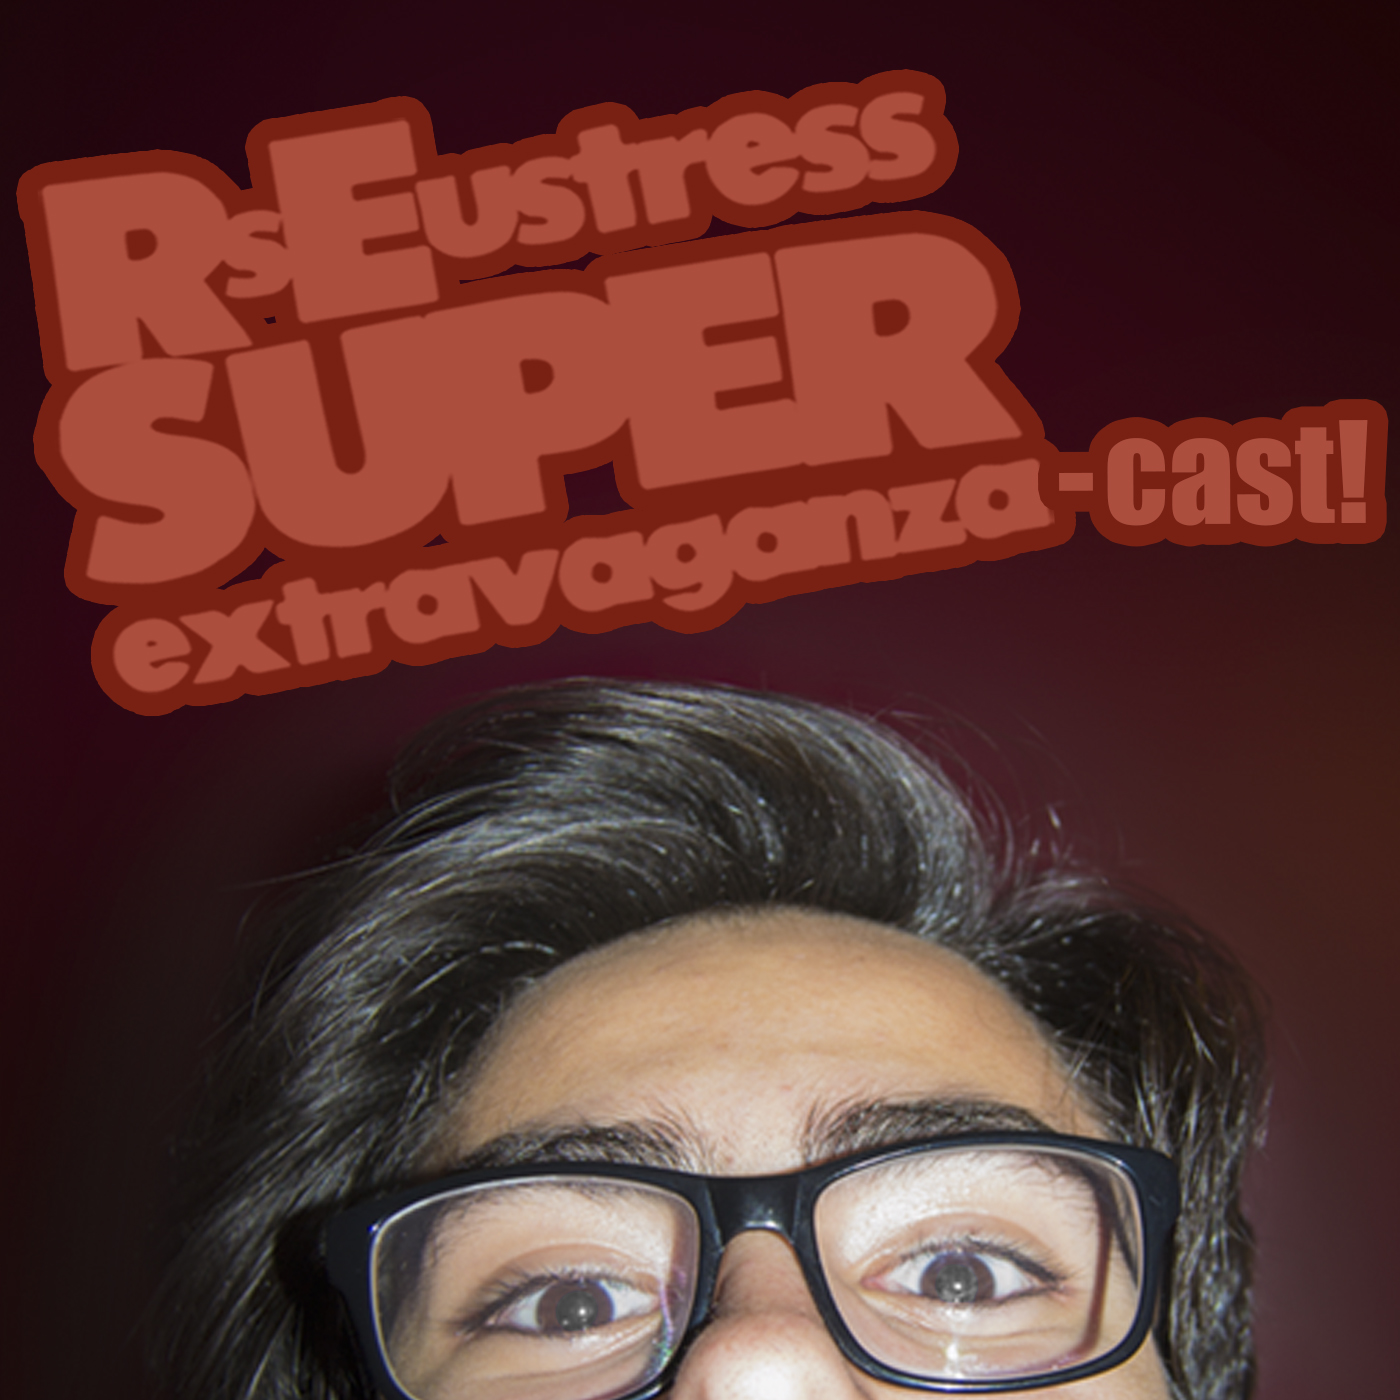 RsEustress Super Extravaganza-Cast!